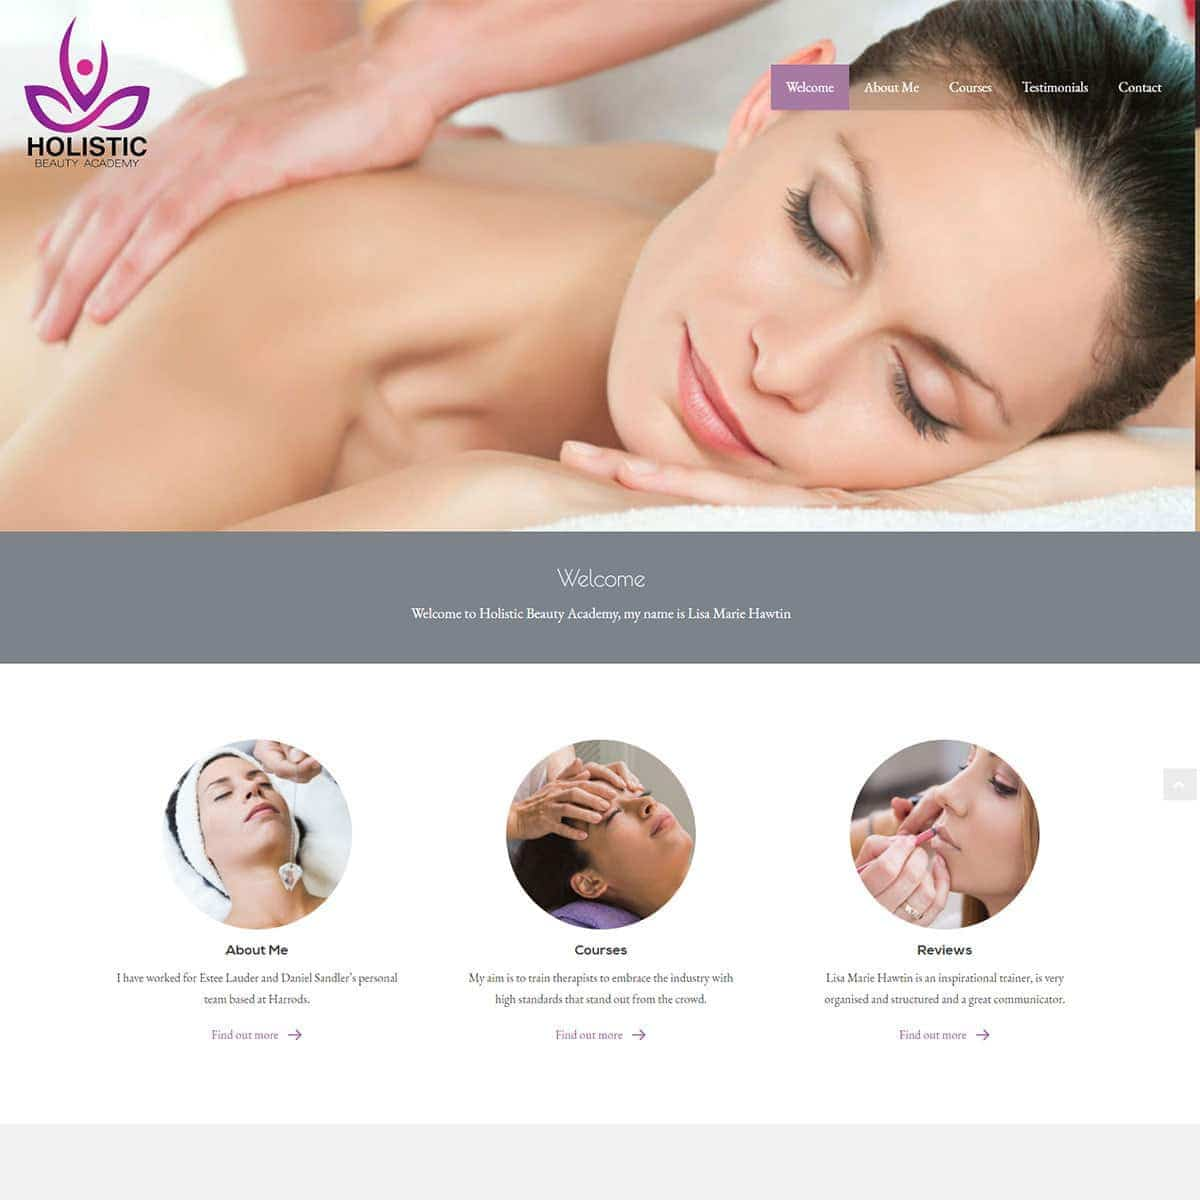 Holistic Beauty Academy - HealthHosts - Web Design for Therapists